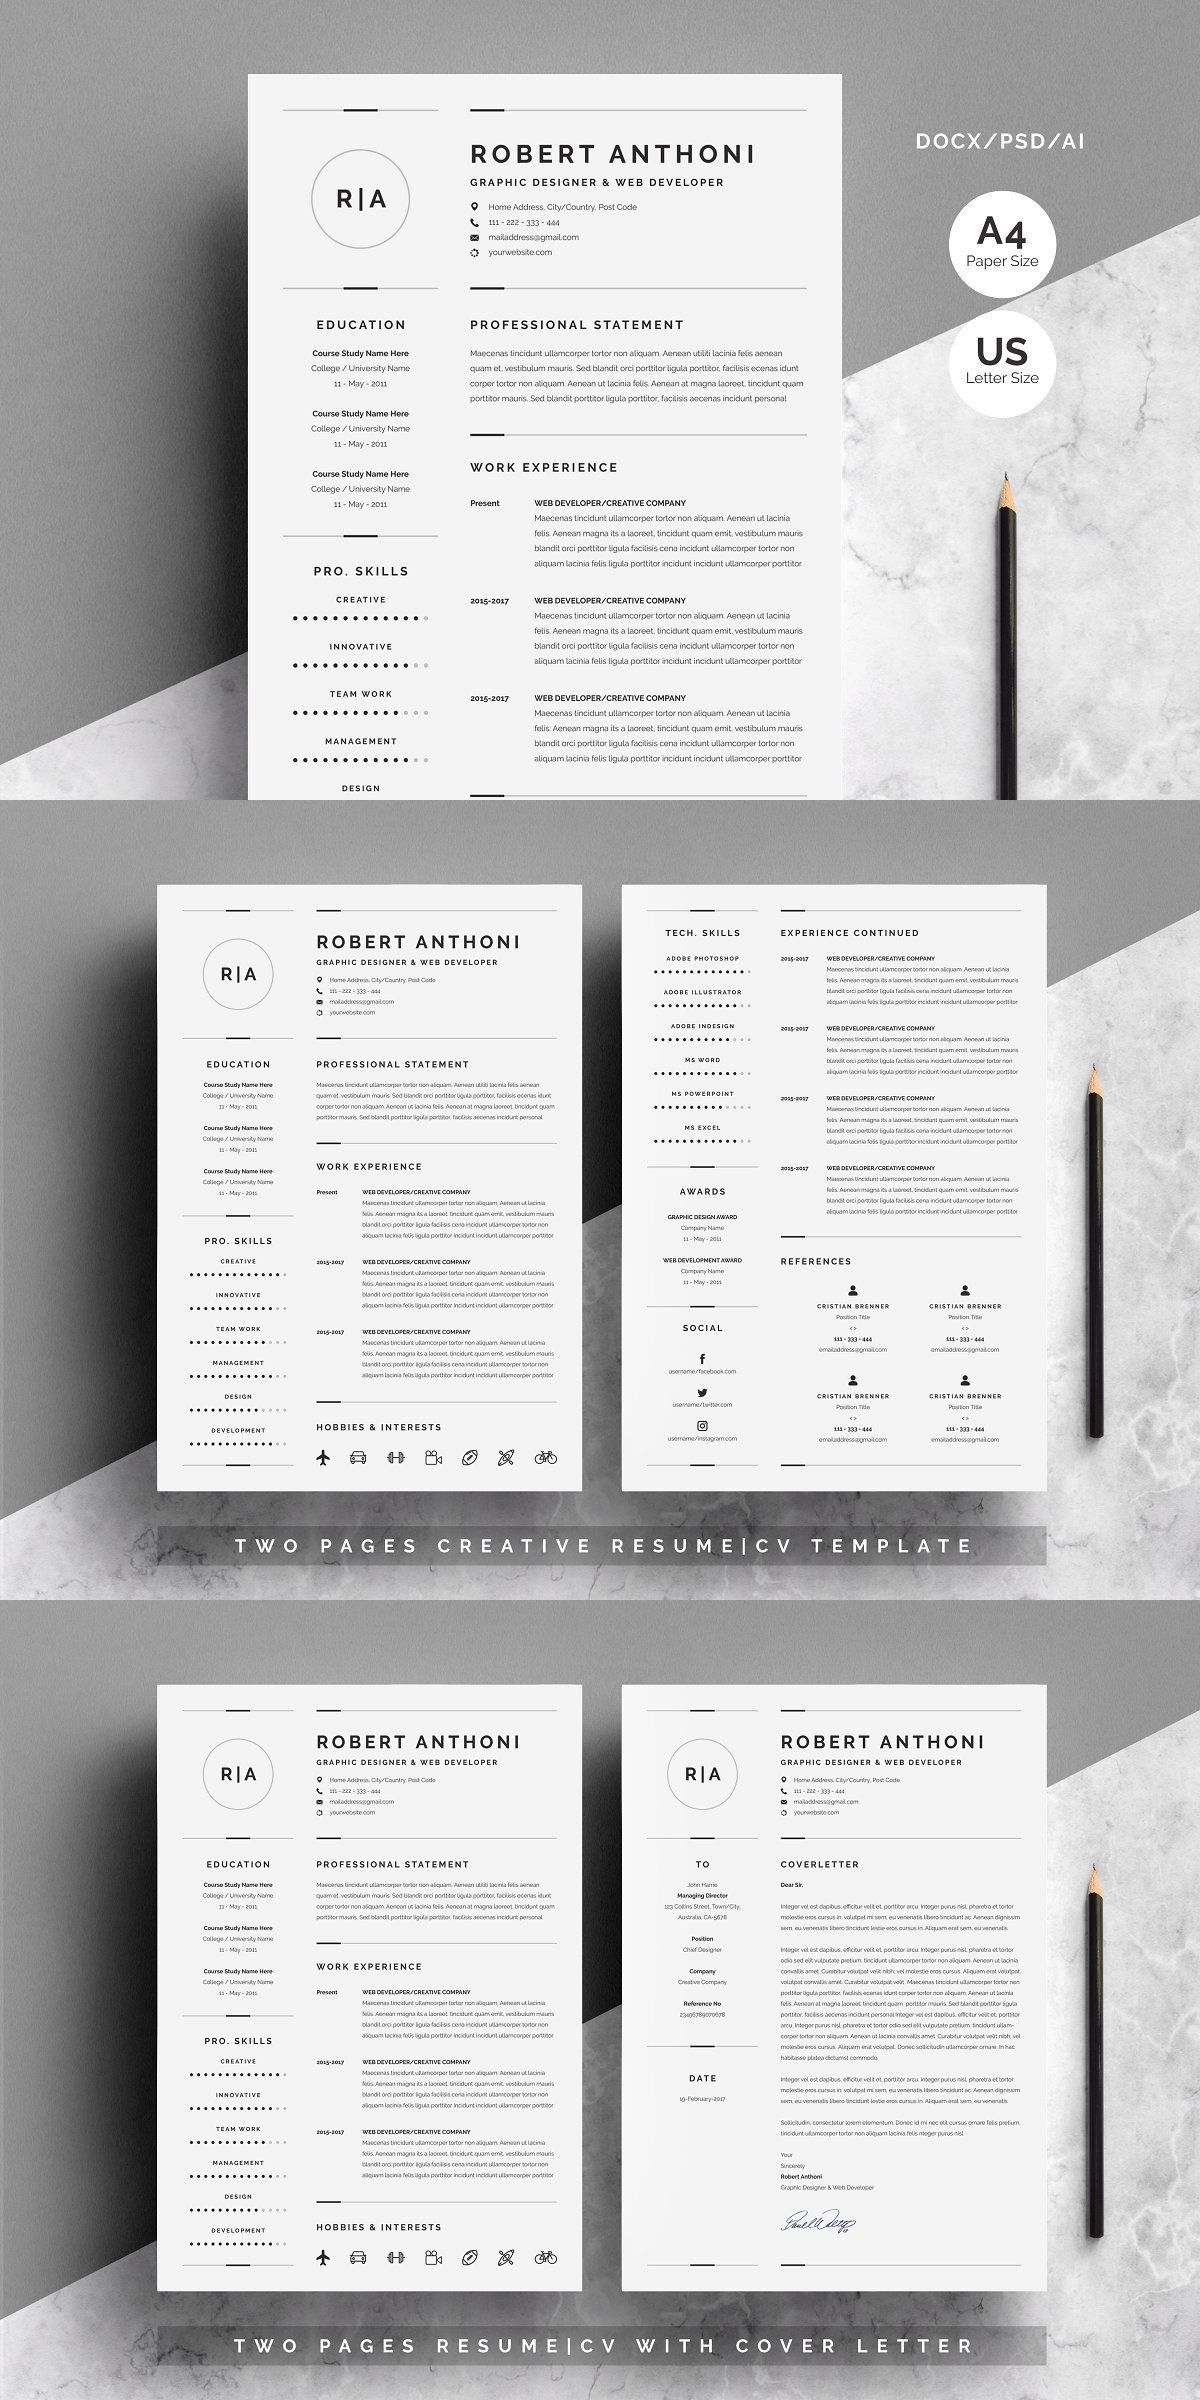 3 pages clean resumecv template cv template resume cv